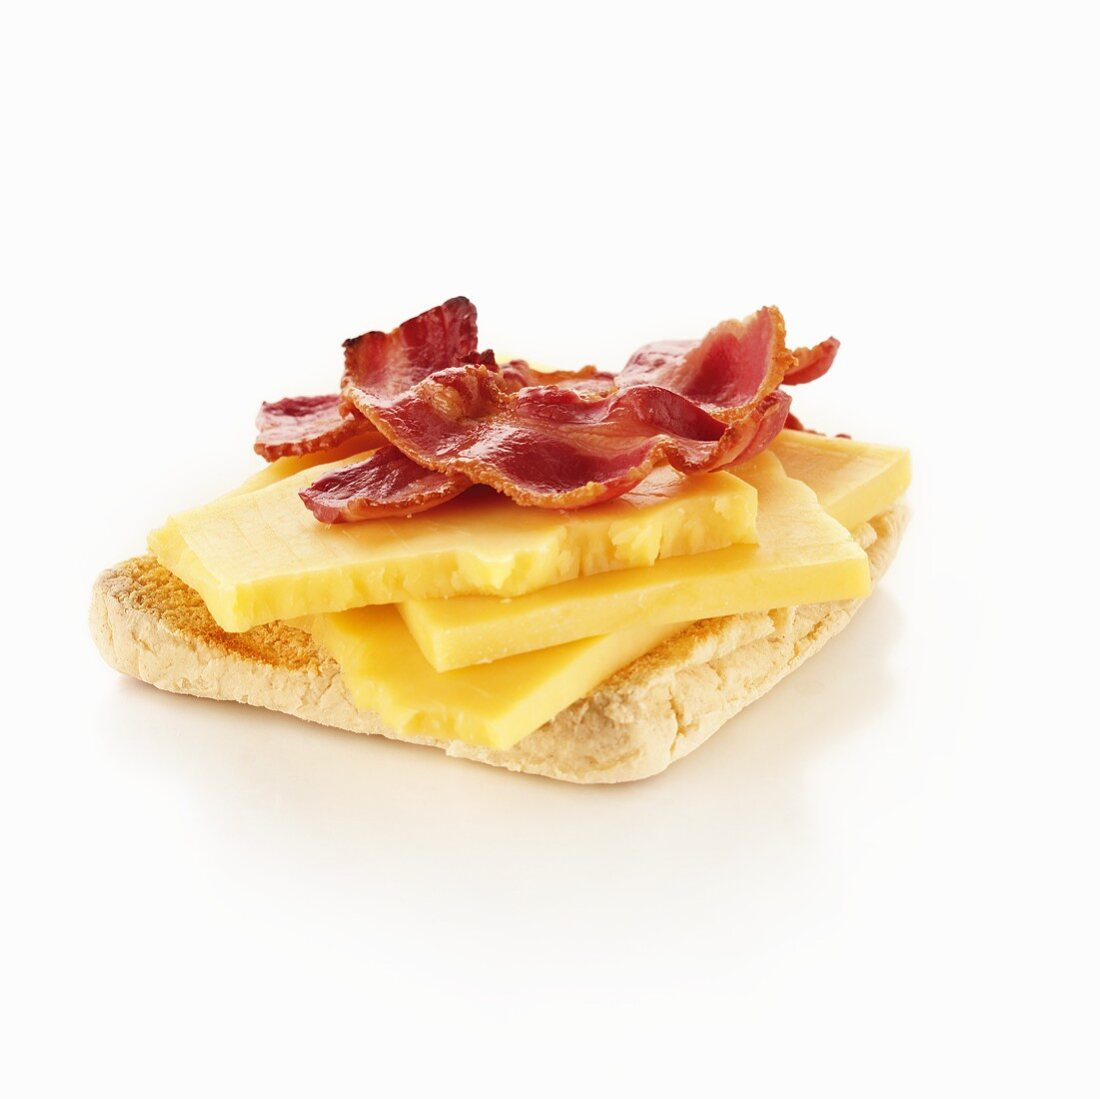 Cheese and fried bacon on English muffin